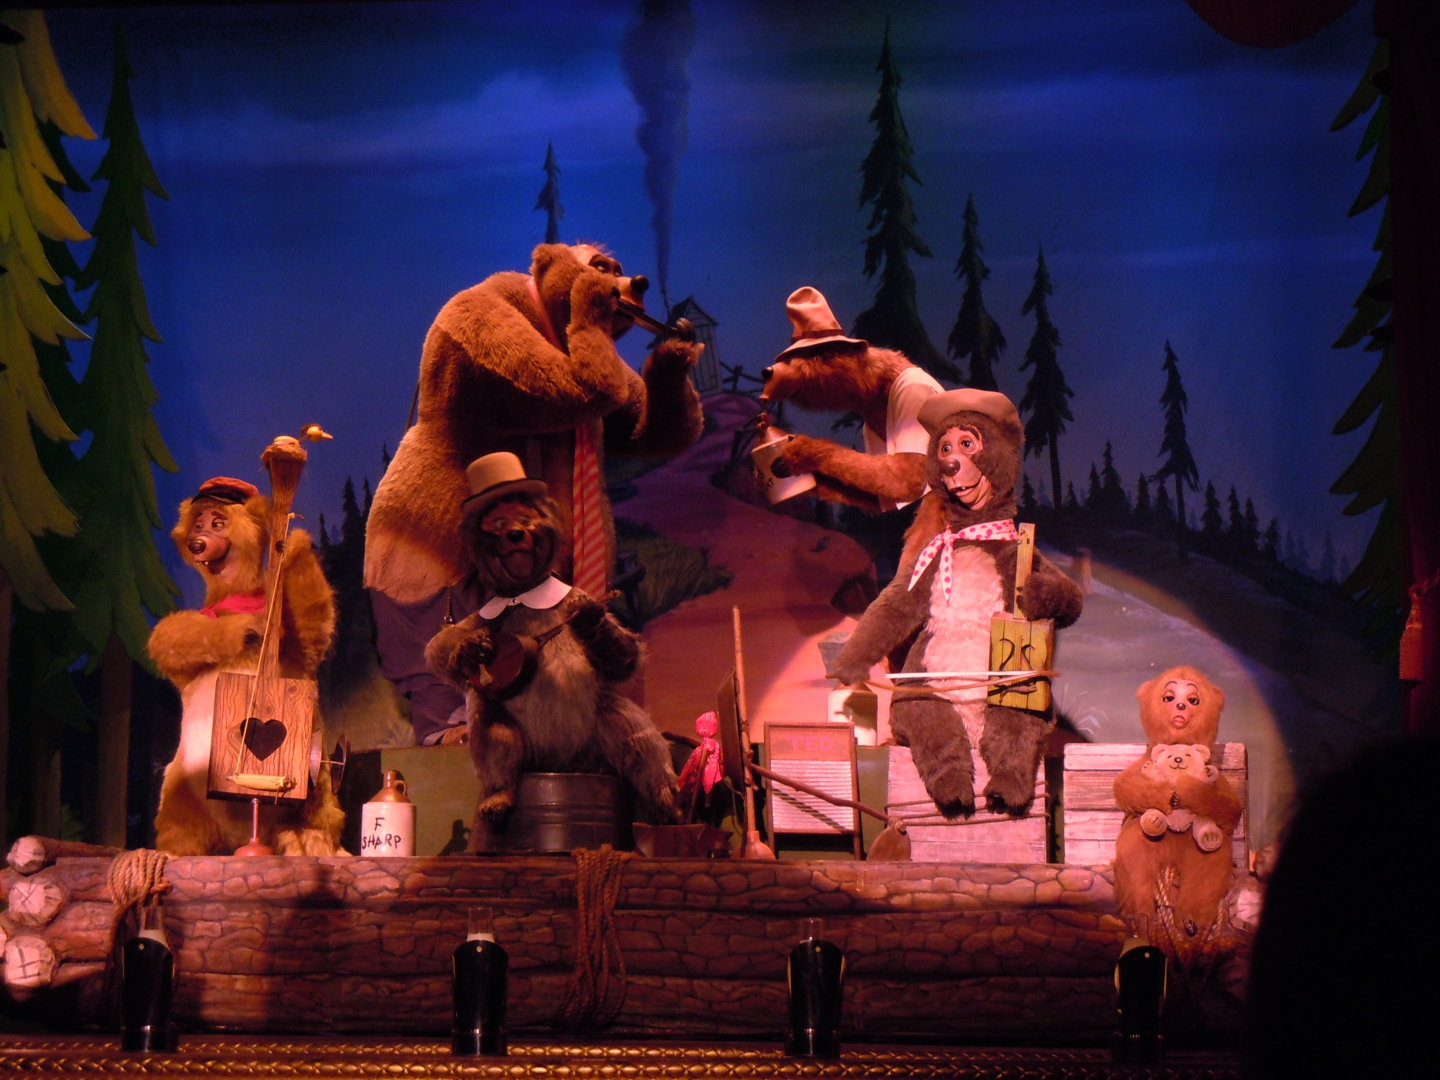 Country bears on stage performing at Disney World